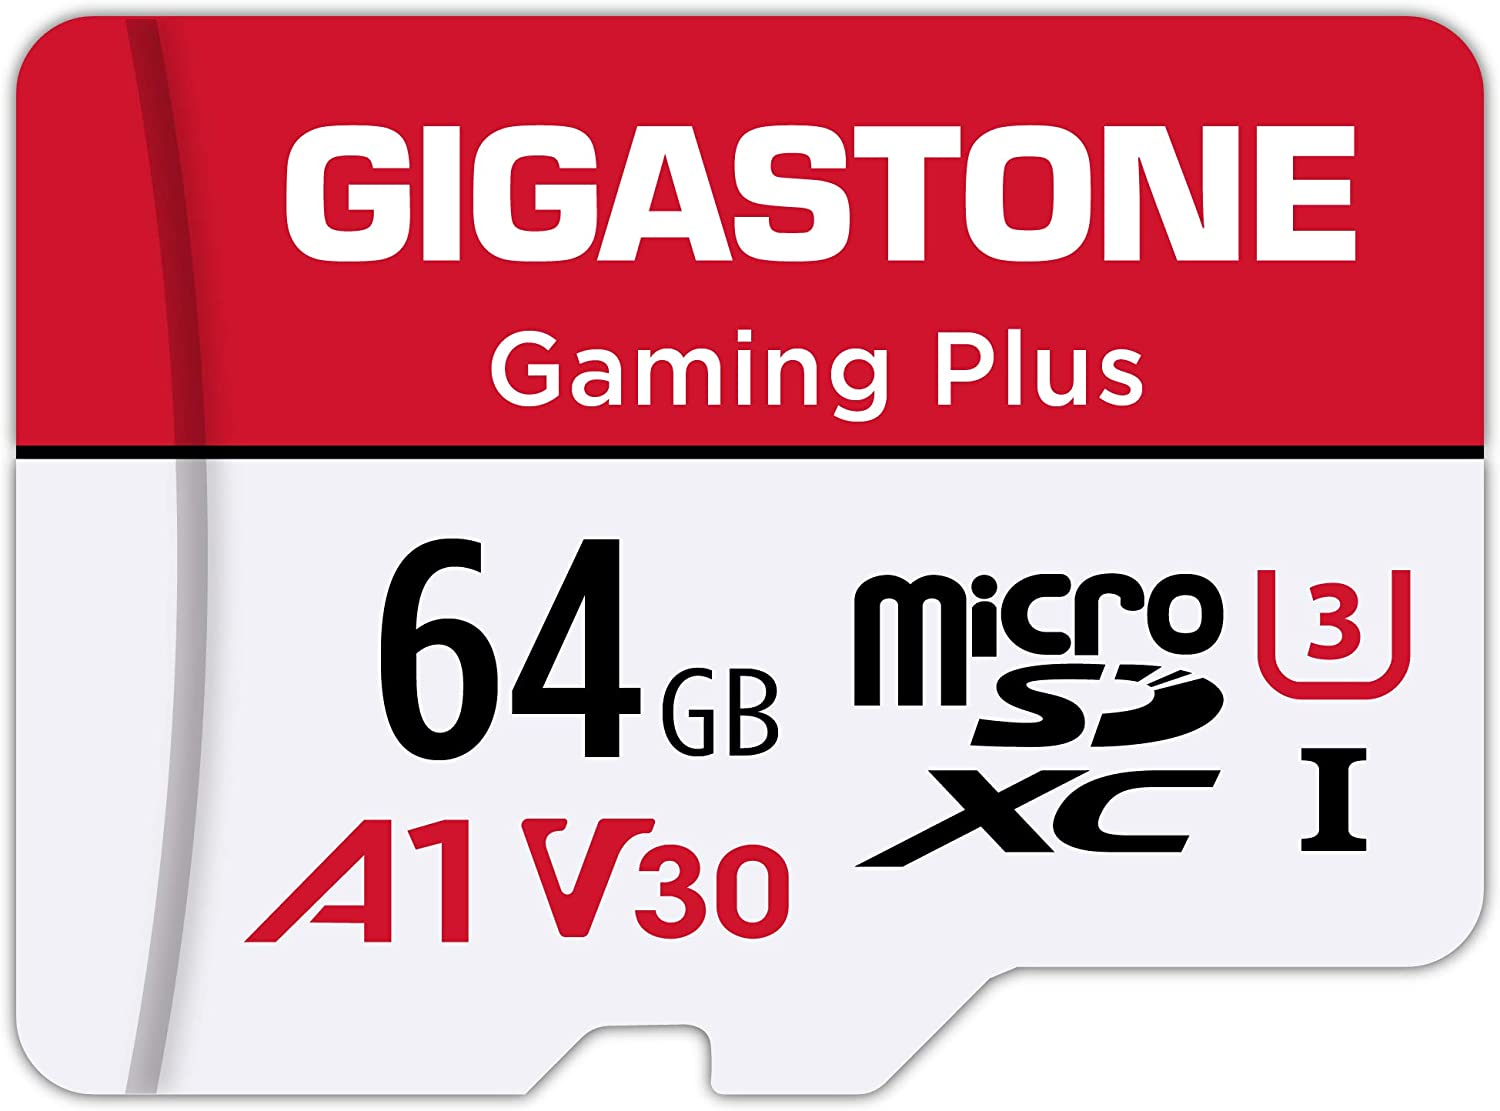 gigastone gaming micro sd card for raspberry pi system